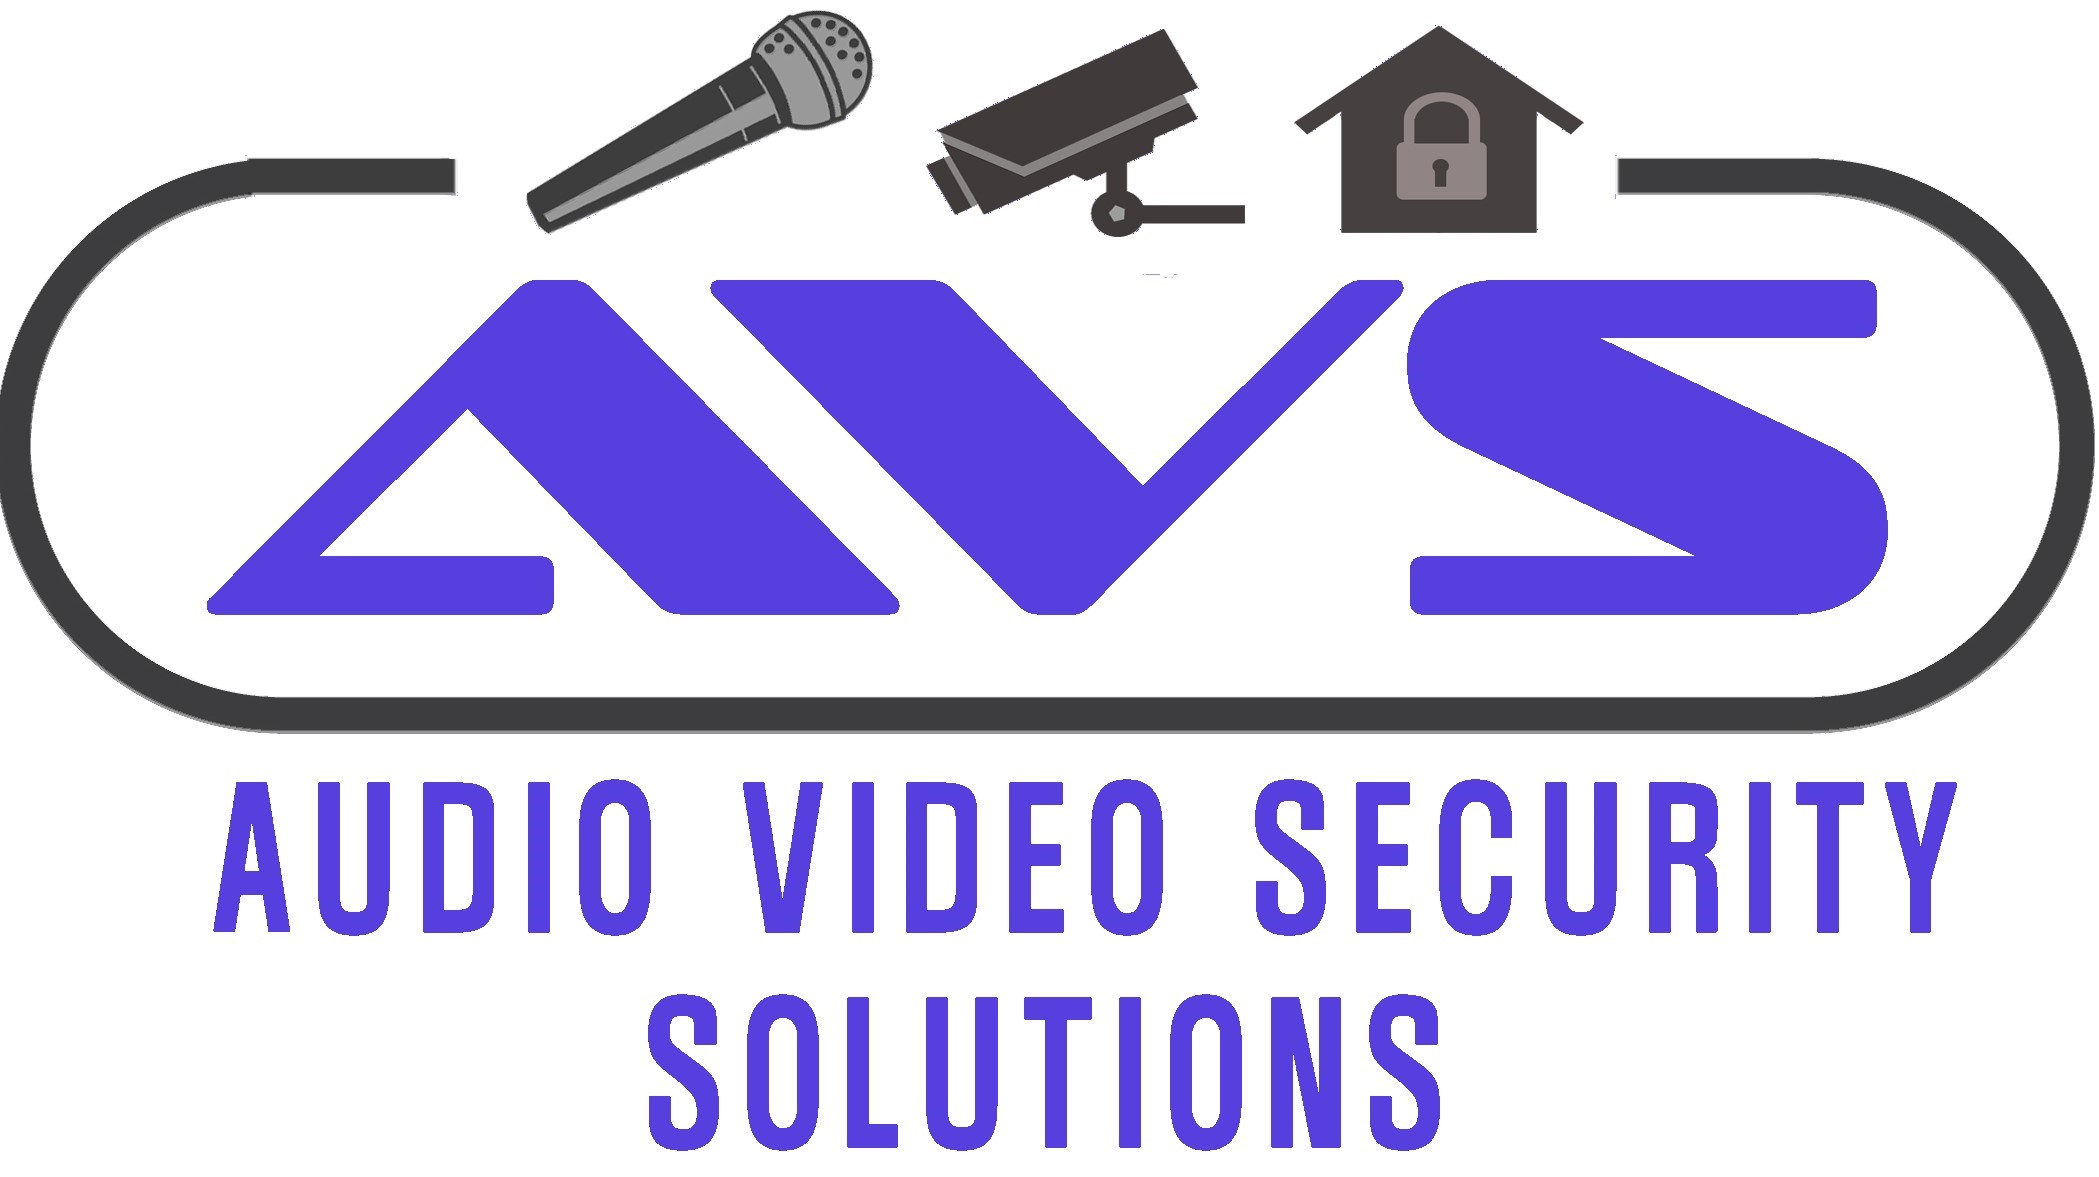 Audio Video Security Solutions